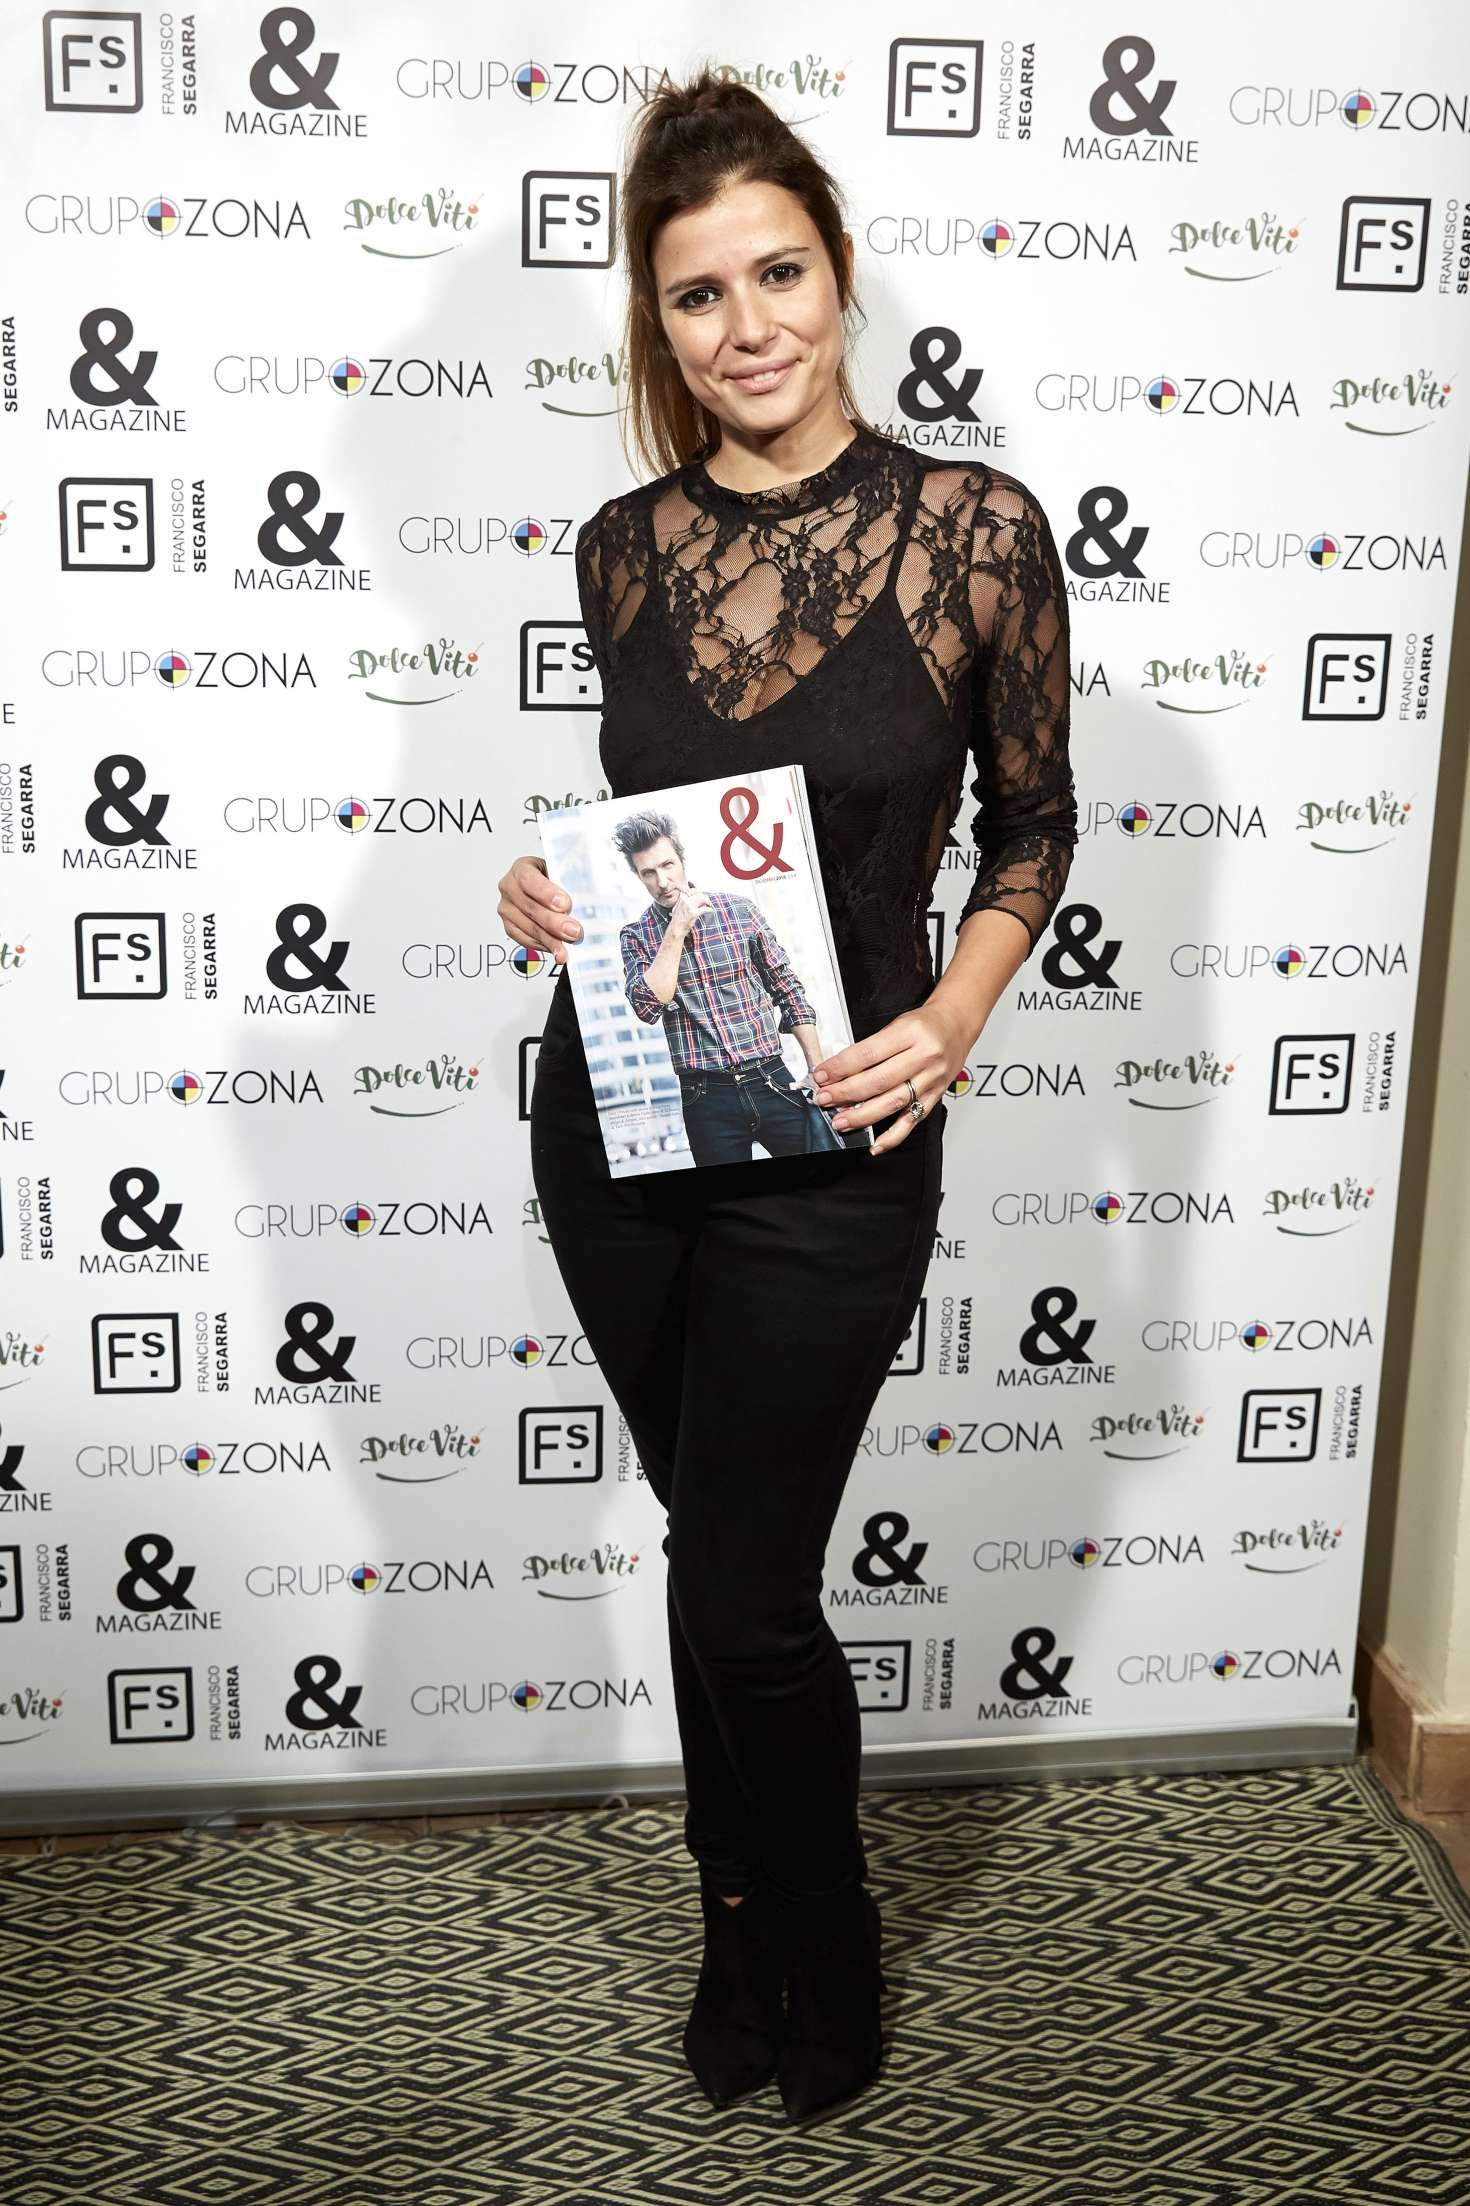 Ruth armas 39 and magazine no 9 39 launch event at - Francisco segarra ...